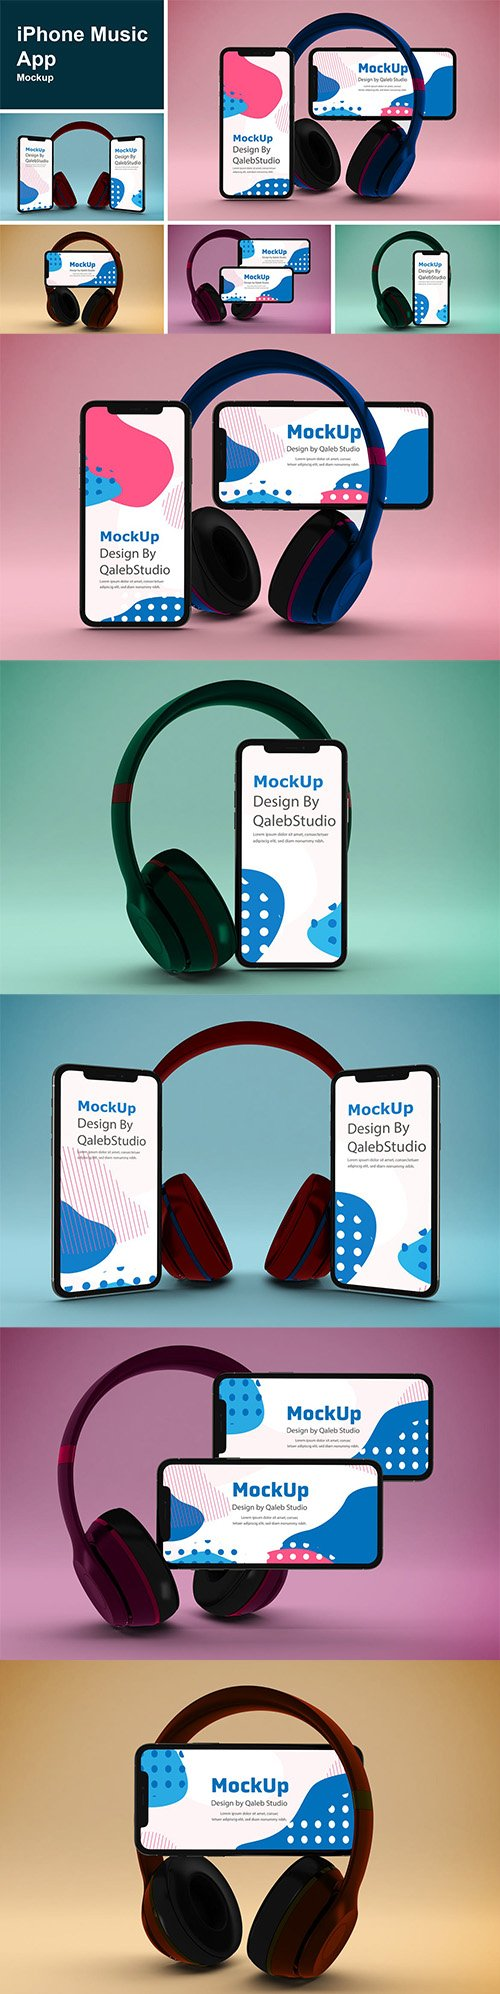 iPhone Music App Mockup